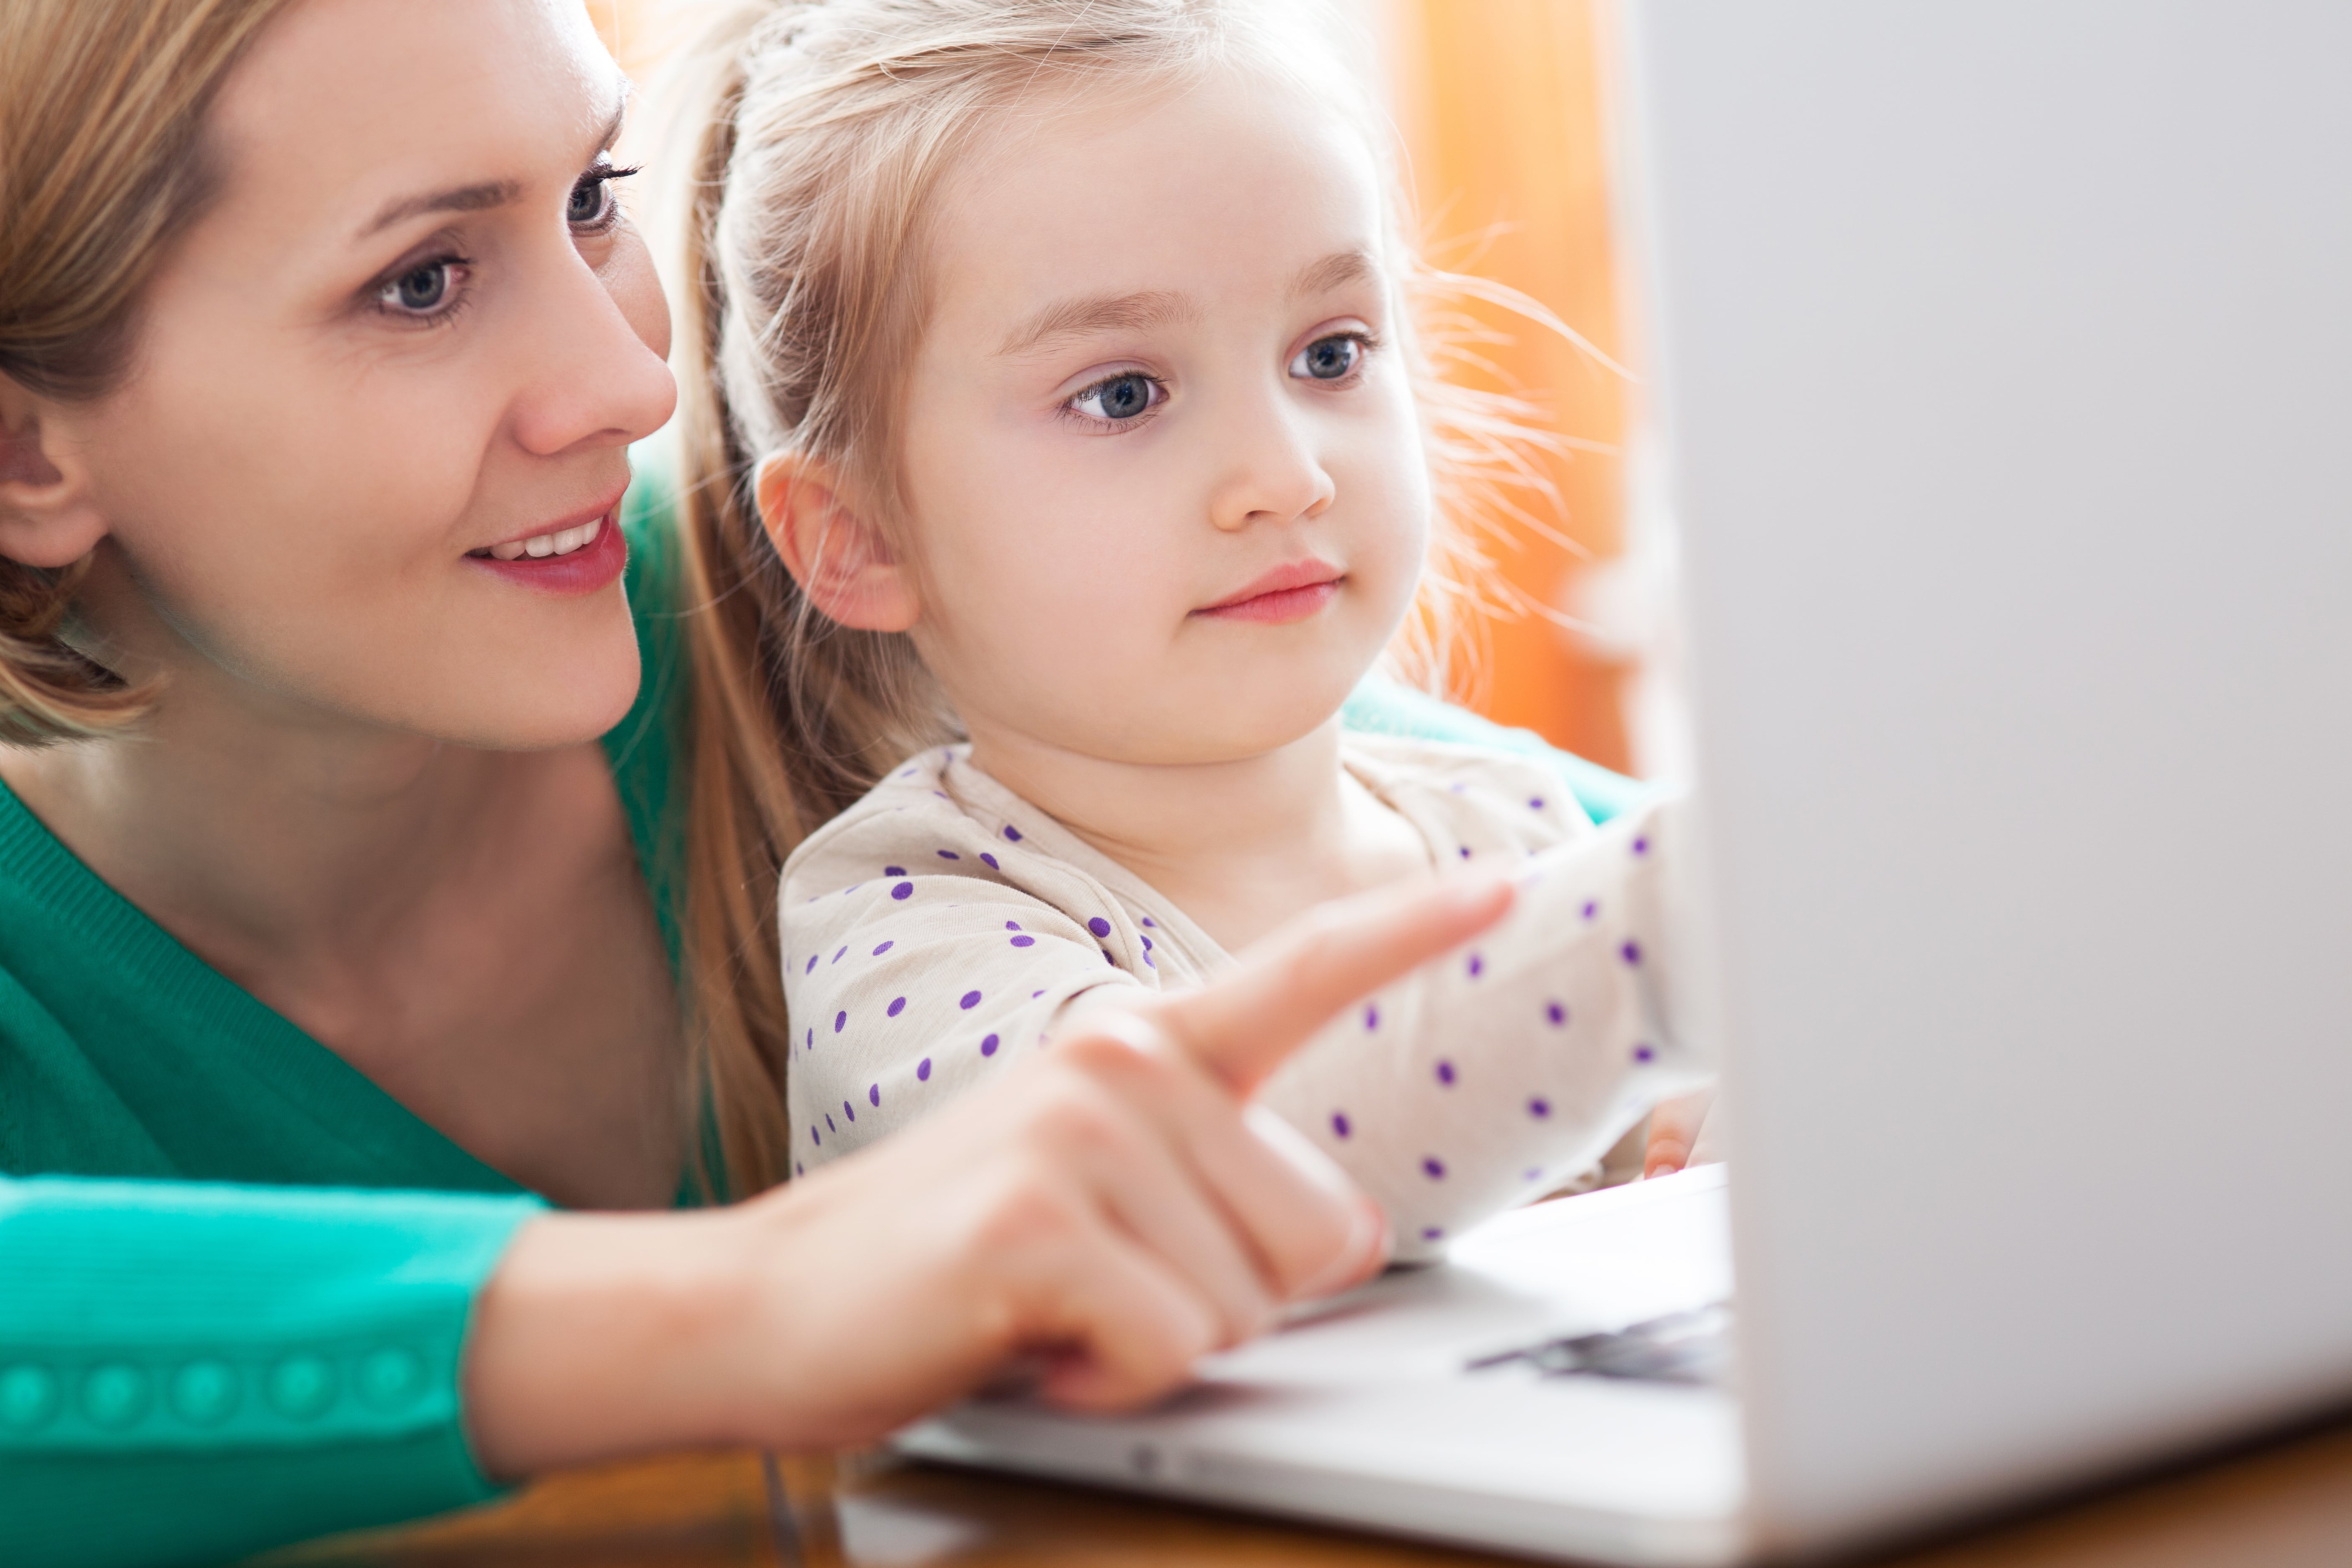 Child and mom looking at a Pc.